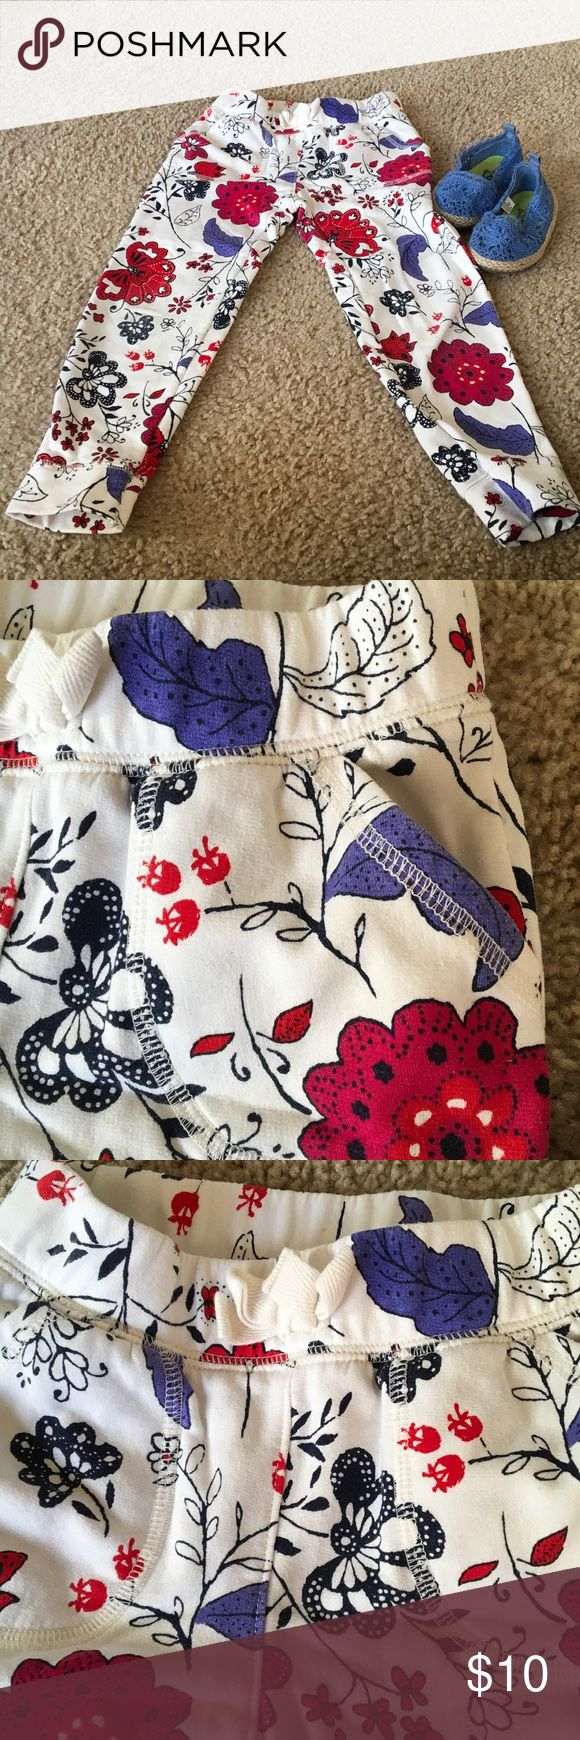 "OLD NAVY SWEAT PANT Legging FLORAL 5T ❣️🦋❣️🦋🍭❣️ White solid background w/ blossoms in navy, red and denim blue scatter all over cute comfy stretchy pants/ leggings. Made of Blend of cotton & polyester .elastic waistband w drawstring. 5T 20 1/4""around Waistband unstretched...7 3/4"" RISE ....18 1/8"" inseam....4"" leg opening. Old Navy Bottoms Leggings"